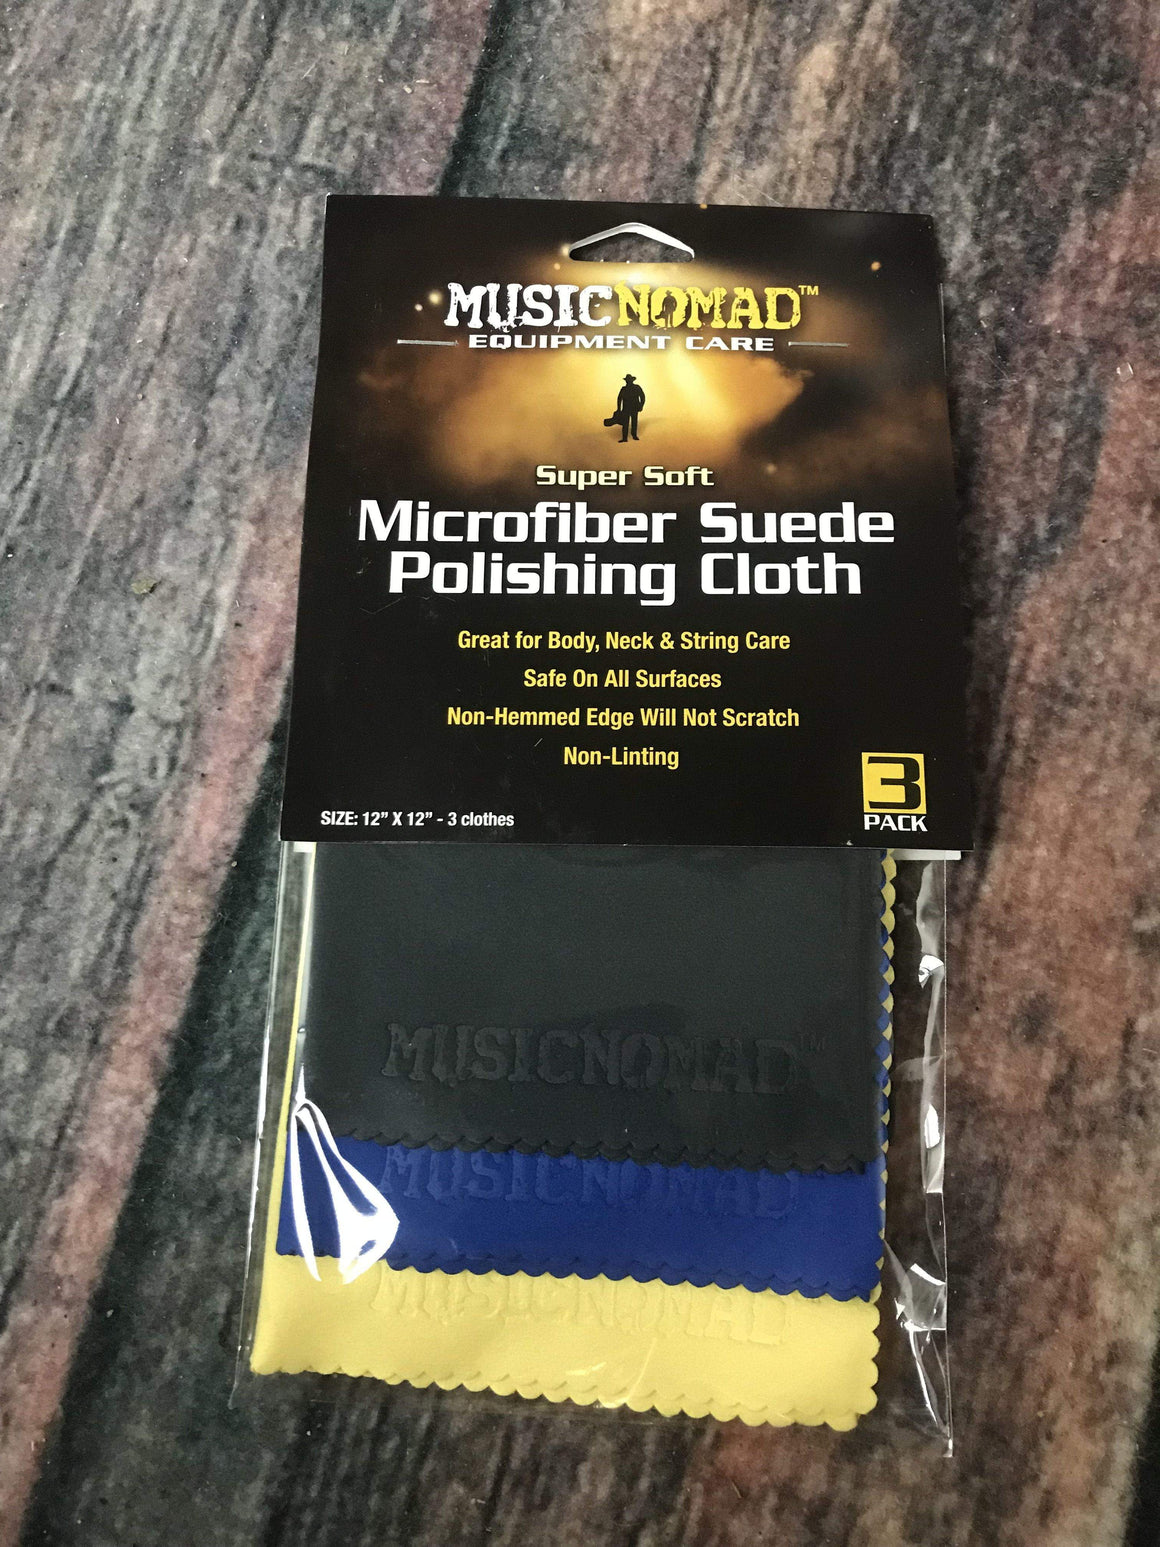 MusicNomad Maintenance Music Nomad MN203 3 Pack of Super Soft Edgeless MicroFiber Guitar Detailing Towel